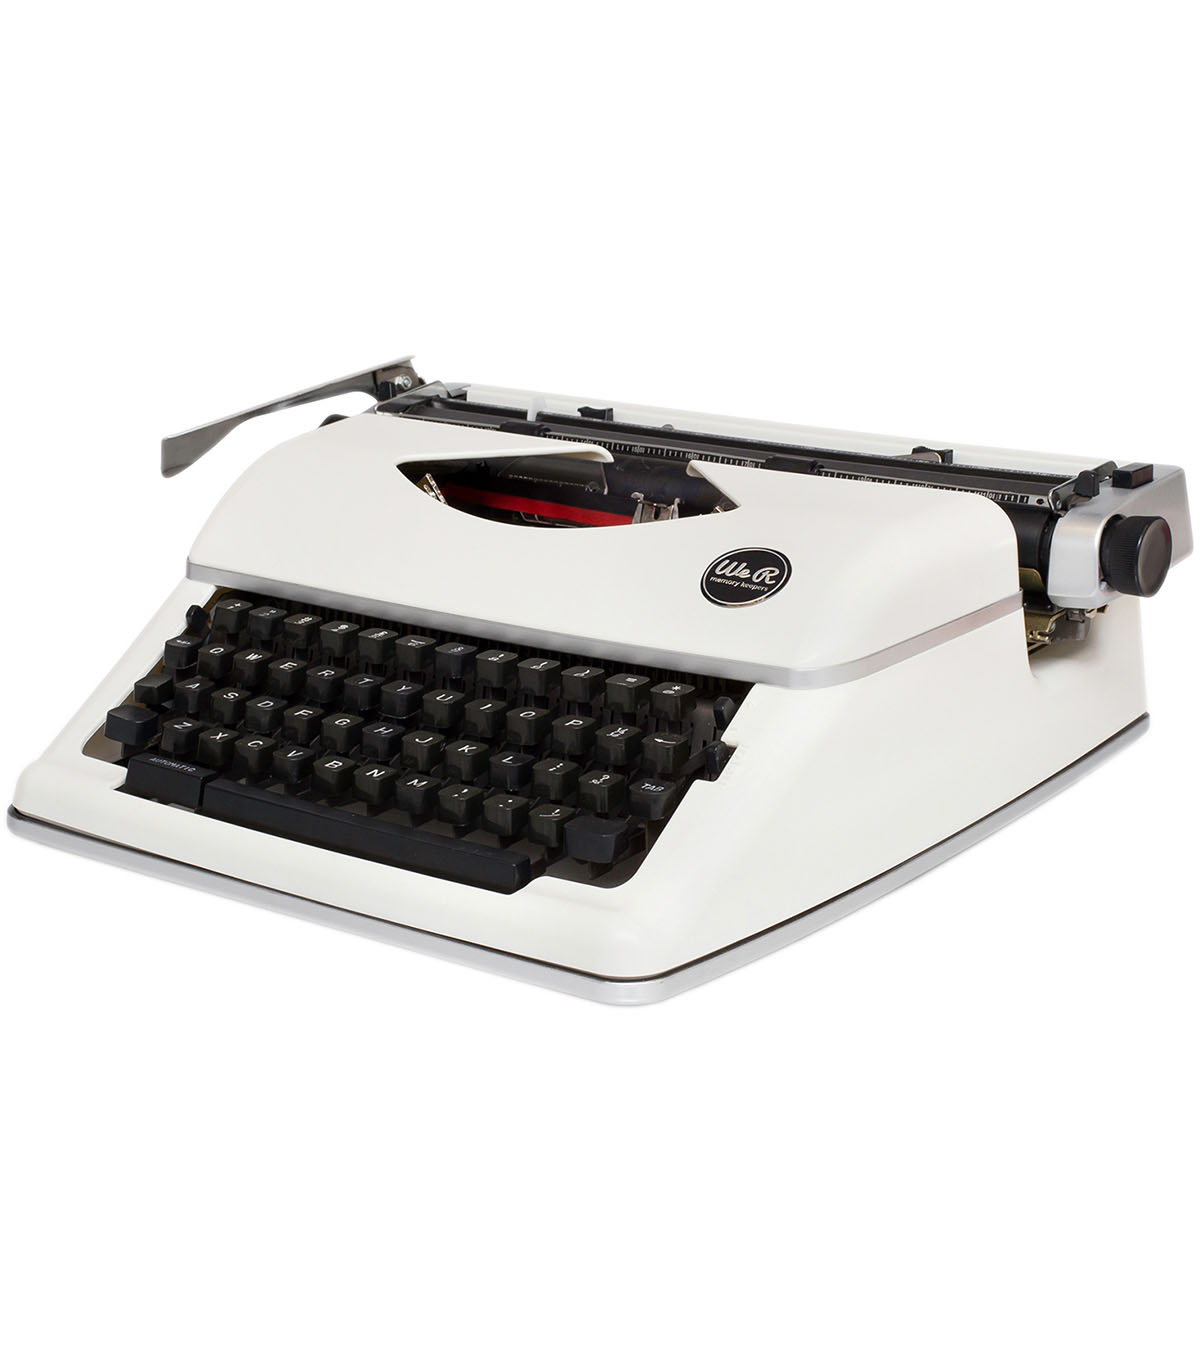 We R Typecast Typewriter-White